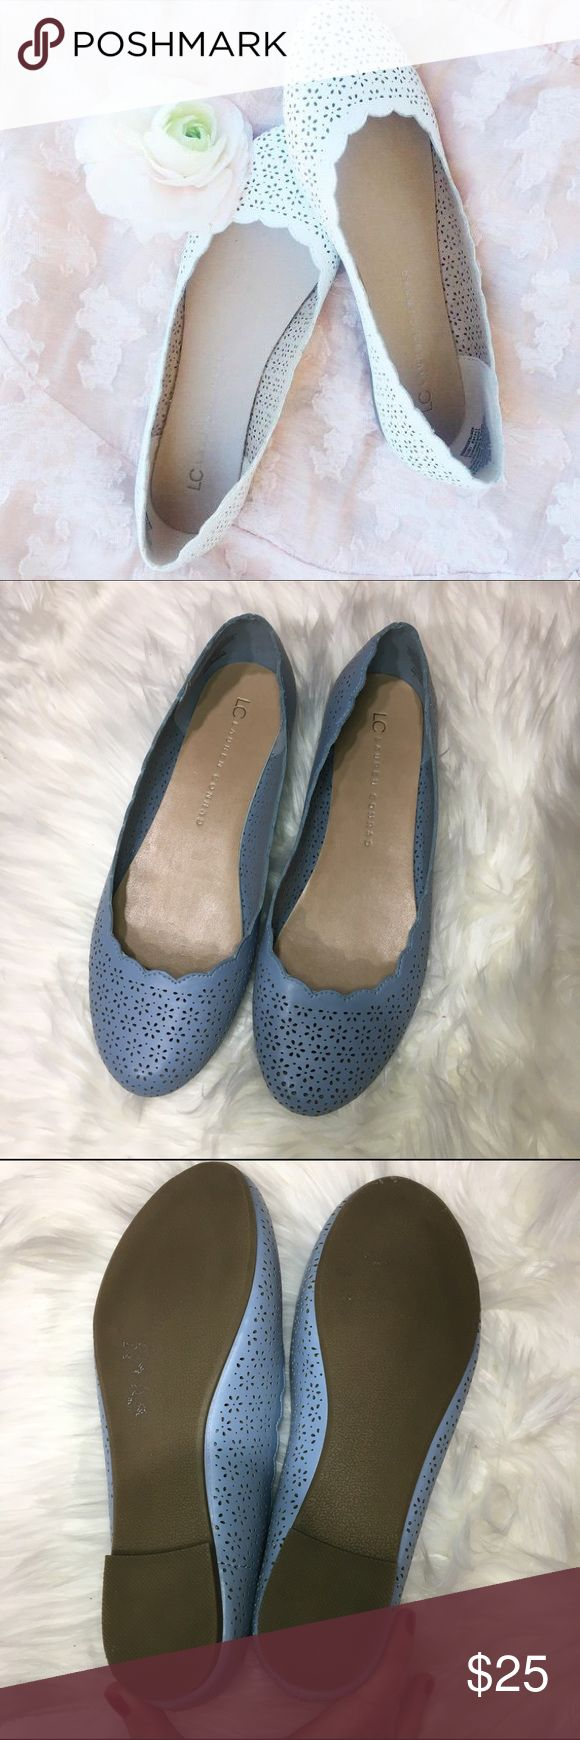 Lauren Conrad LC scalloped ballet flats floral LC Lauren Conrad for Kohls Scalloped Ballet flat in beautiful blue color. Floral cut out design. Size 8. Slight scuff on rear heel of one shoe. LC Lauren Conrad Shoes Flats & Loafers